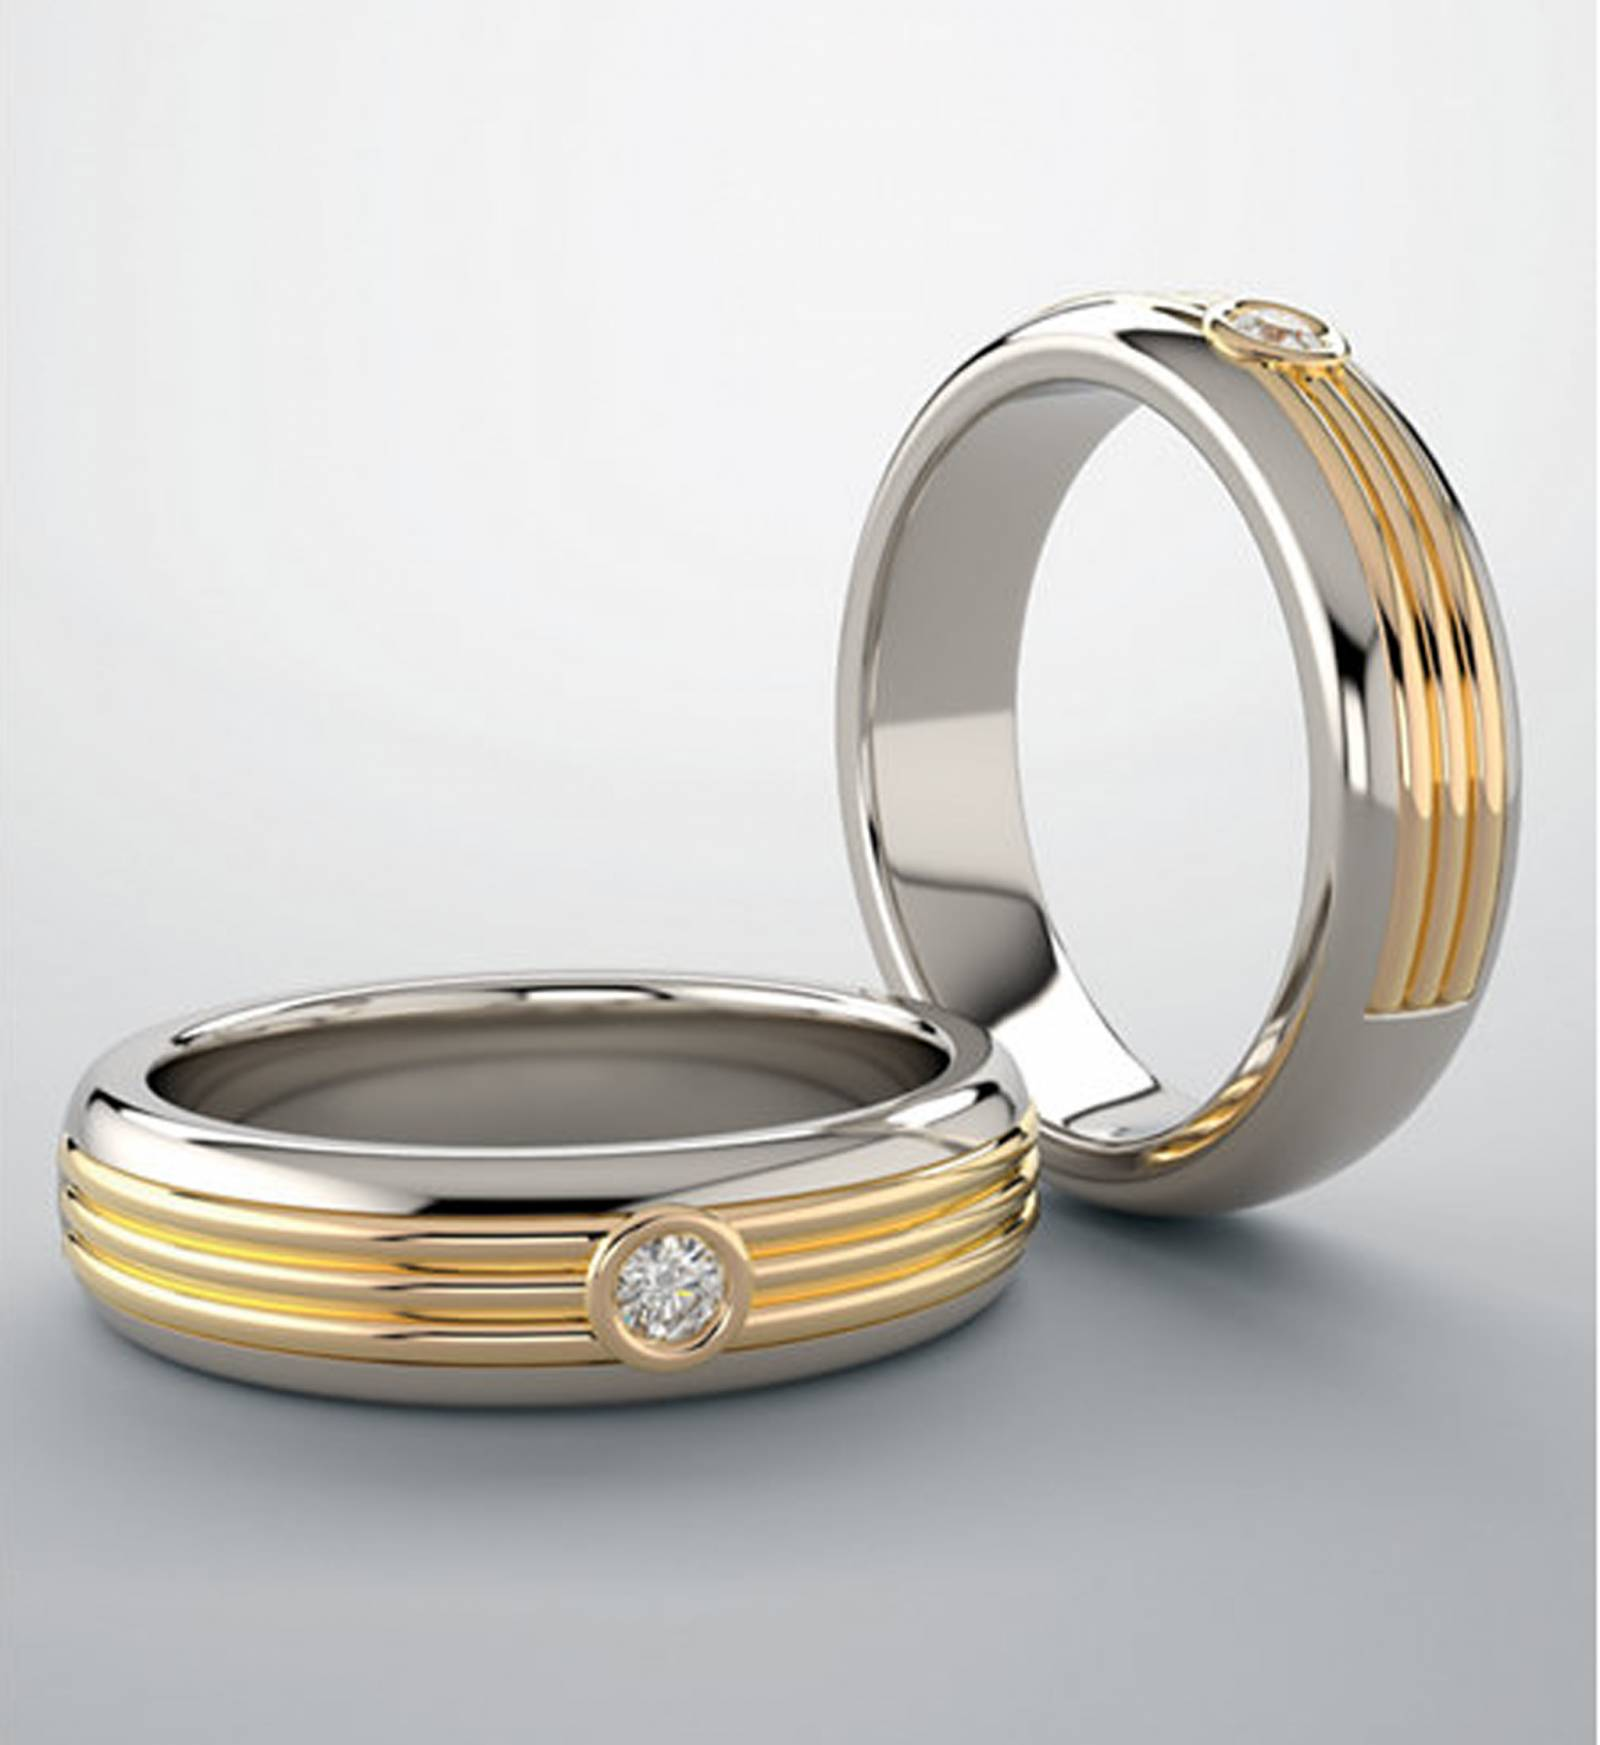 platinum and gold diamond wedding band designed by McCall Jewelry Company